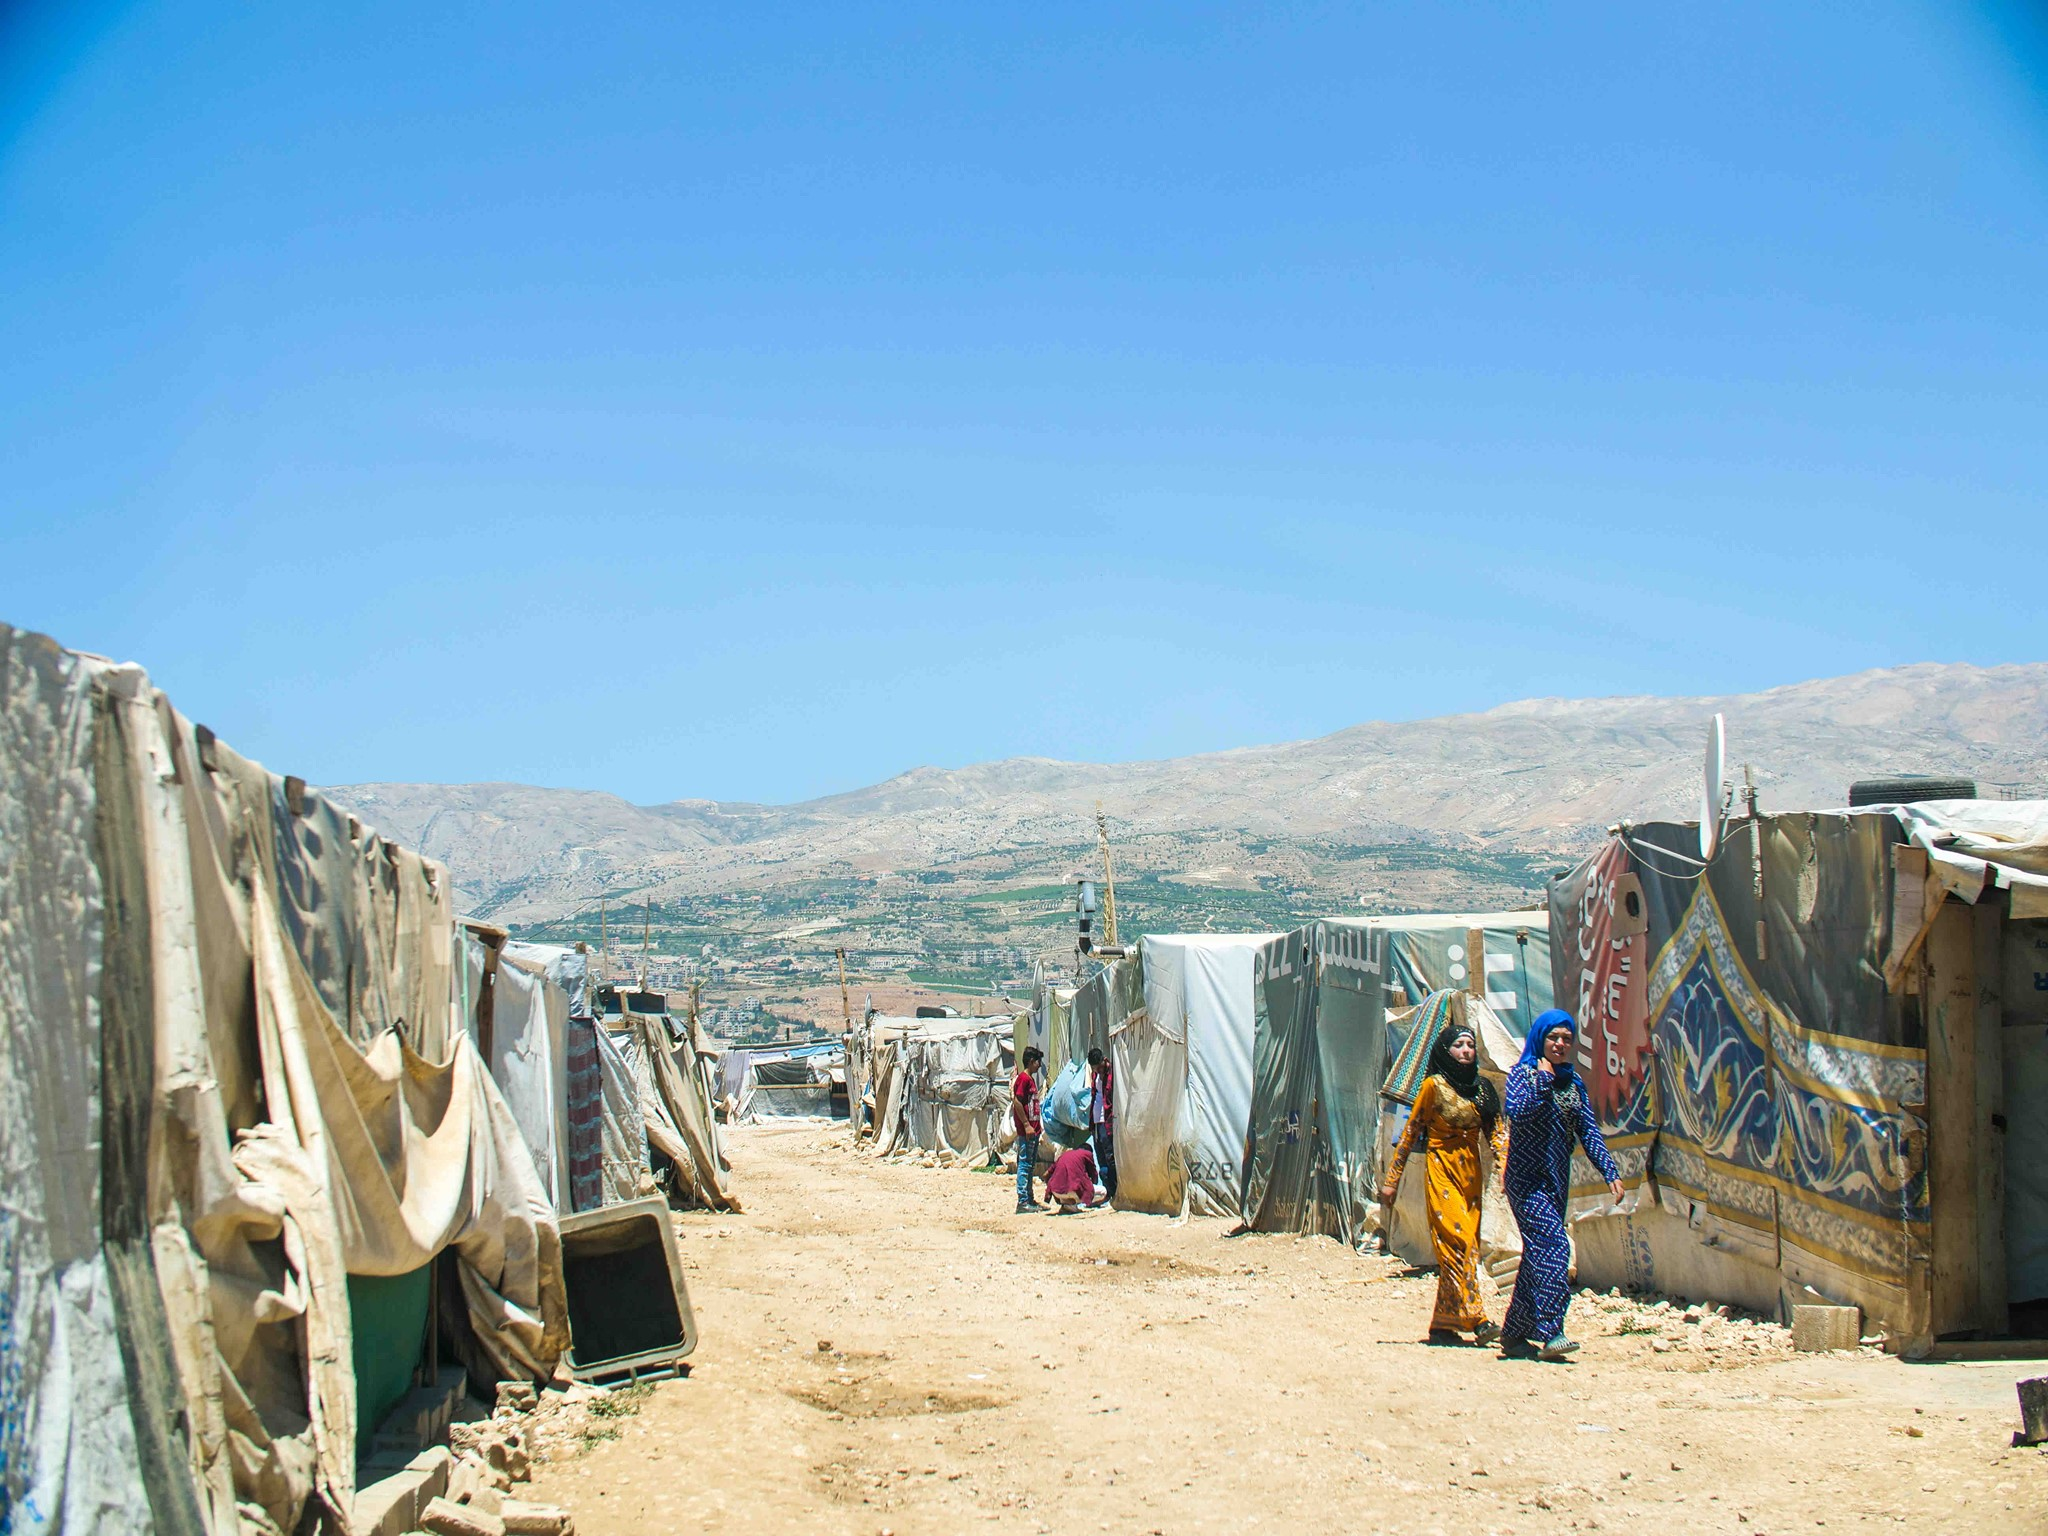 Syrian refugees vulnerable as Lebanon nears collapse